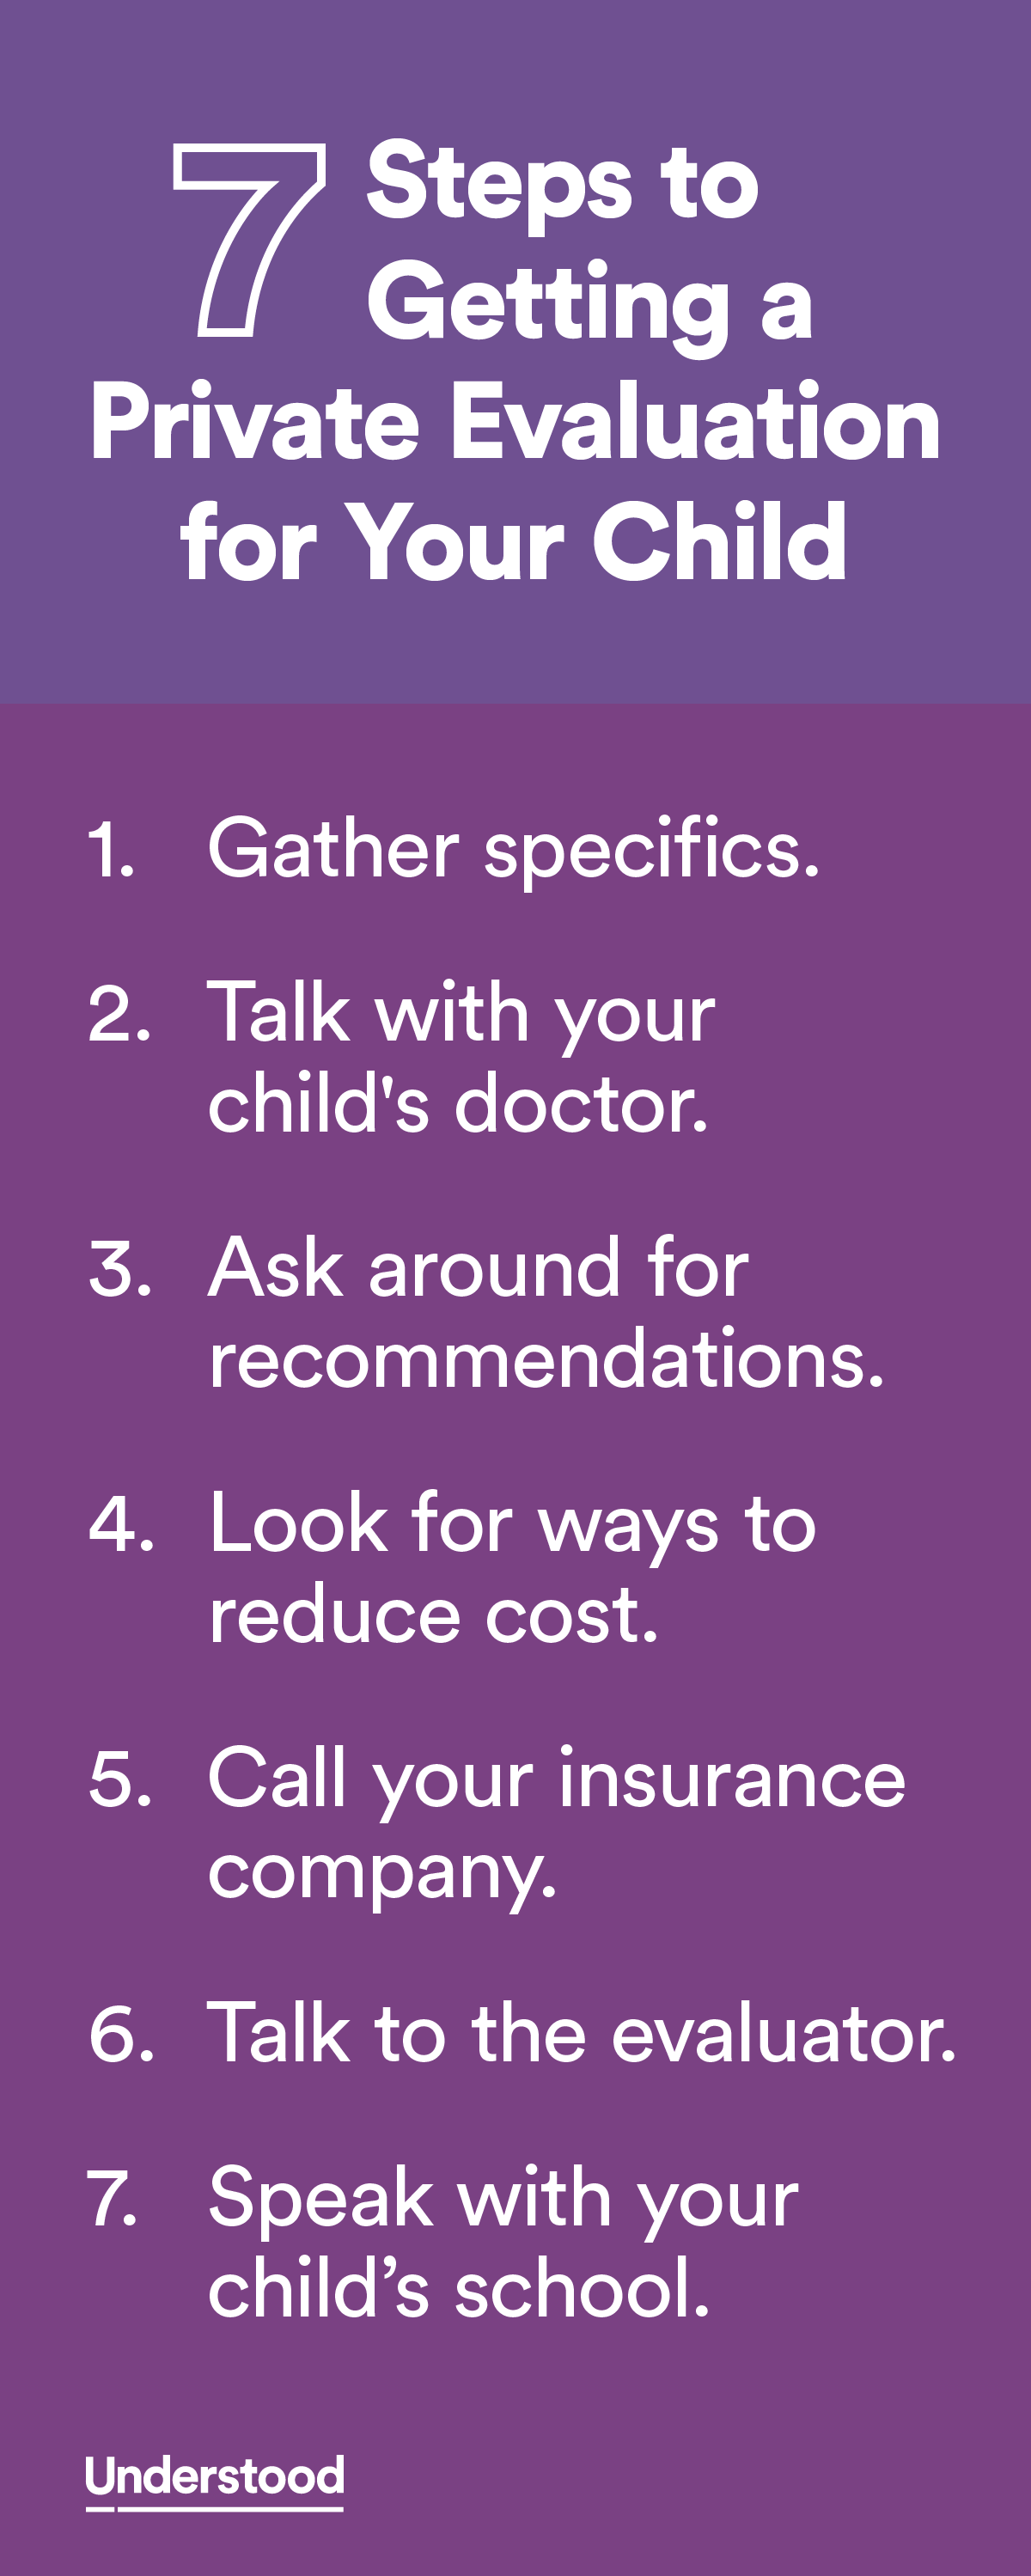 7 Steps To Getting A Private Evaluation For Your Child